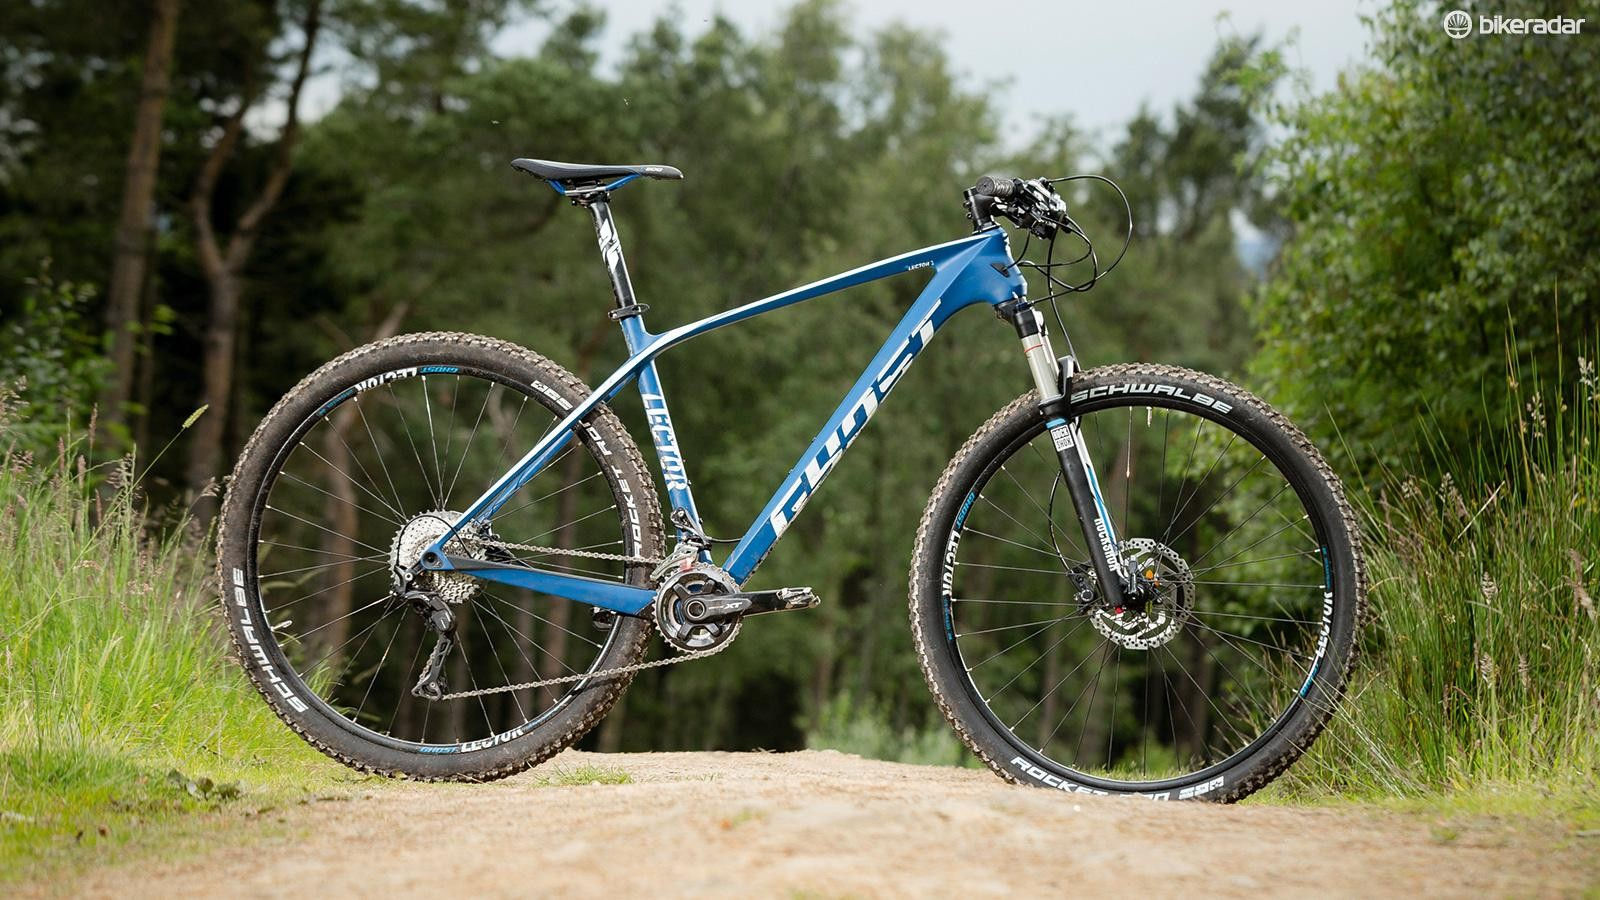 The Ghost Lector LC 3 frame includes really nice detailing such as Shimano direct mount and side swing derailleur compatibility